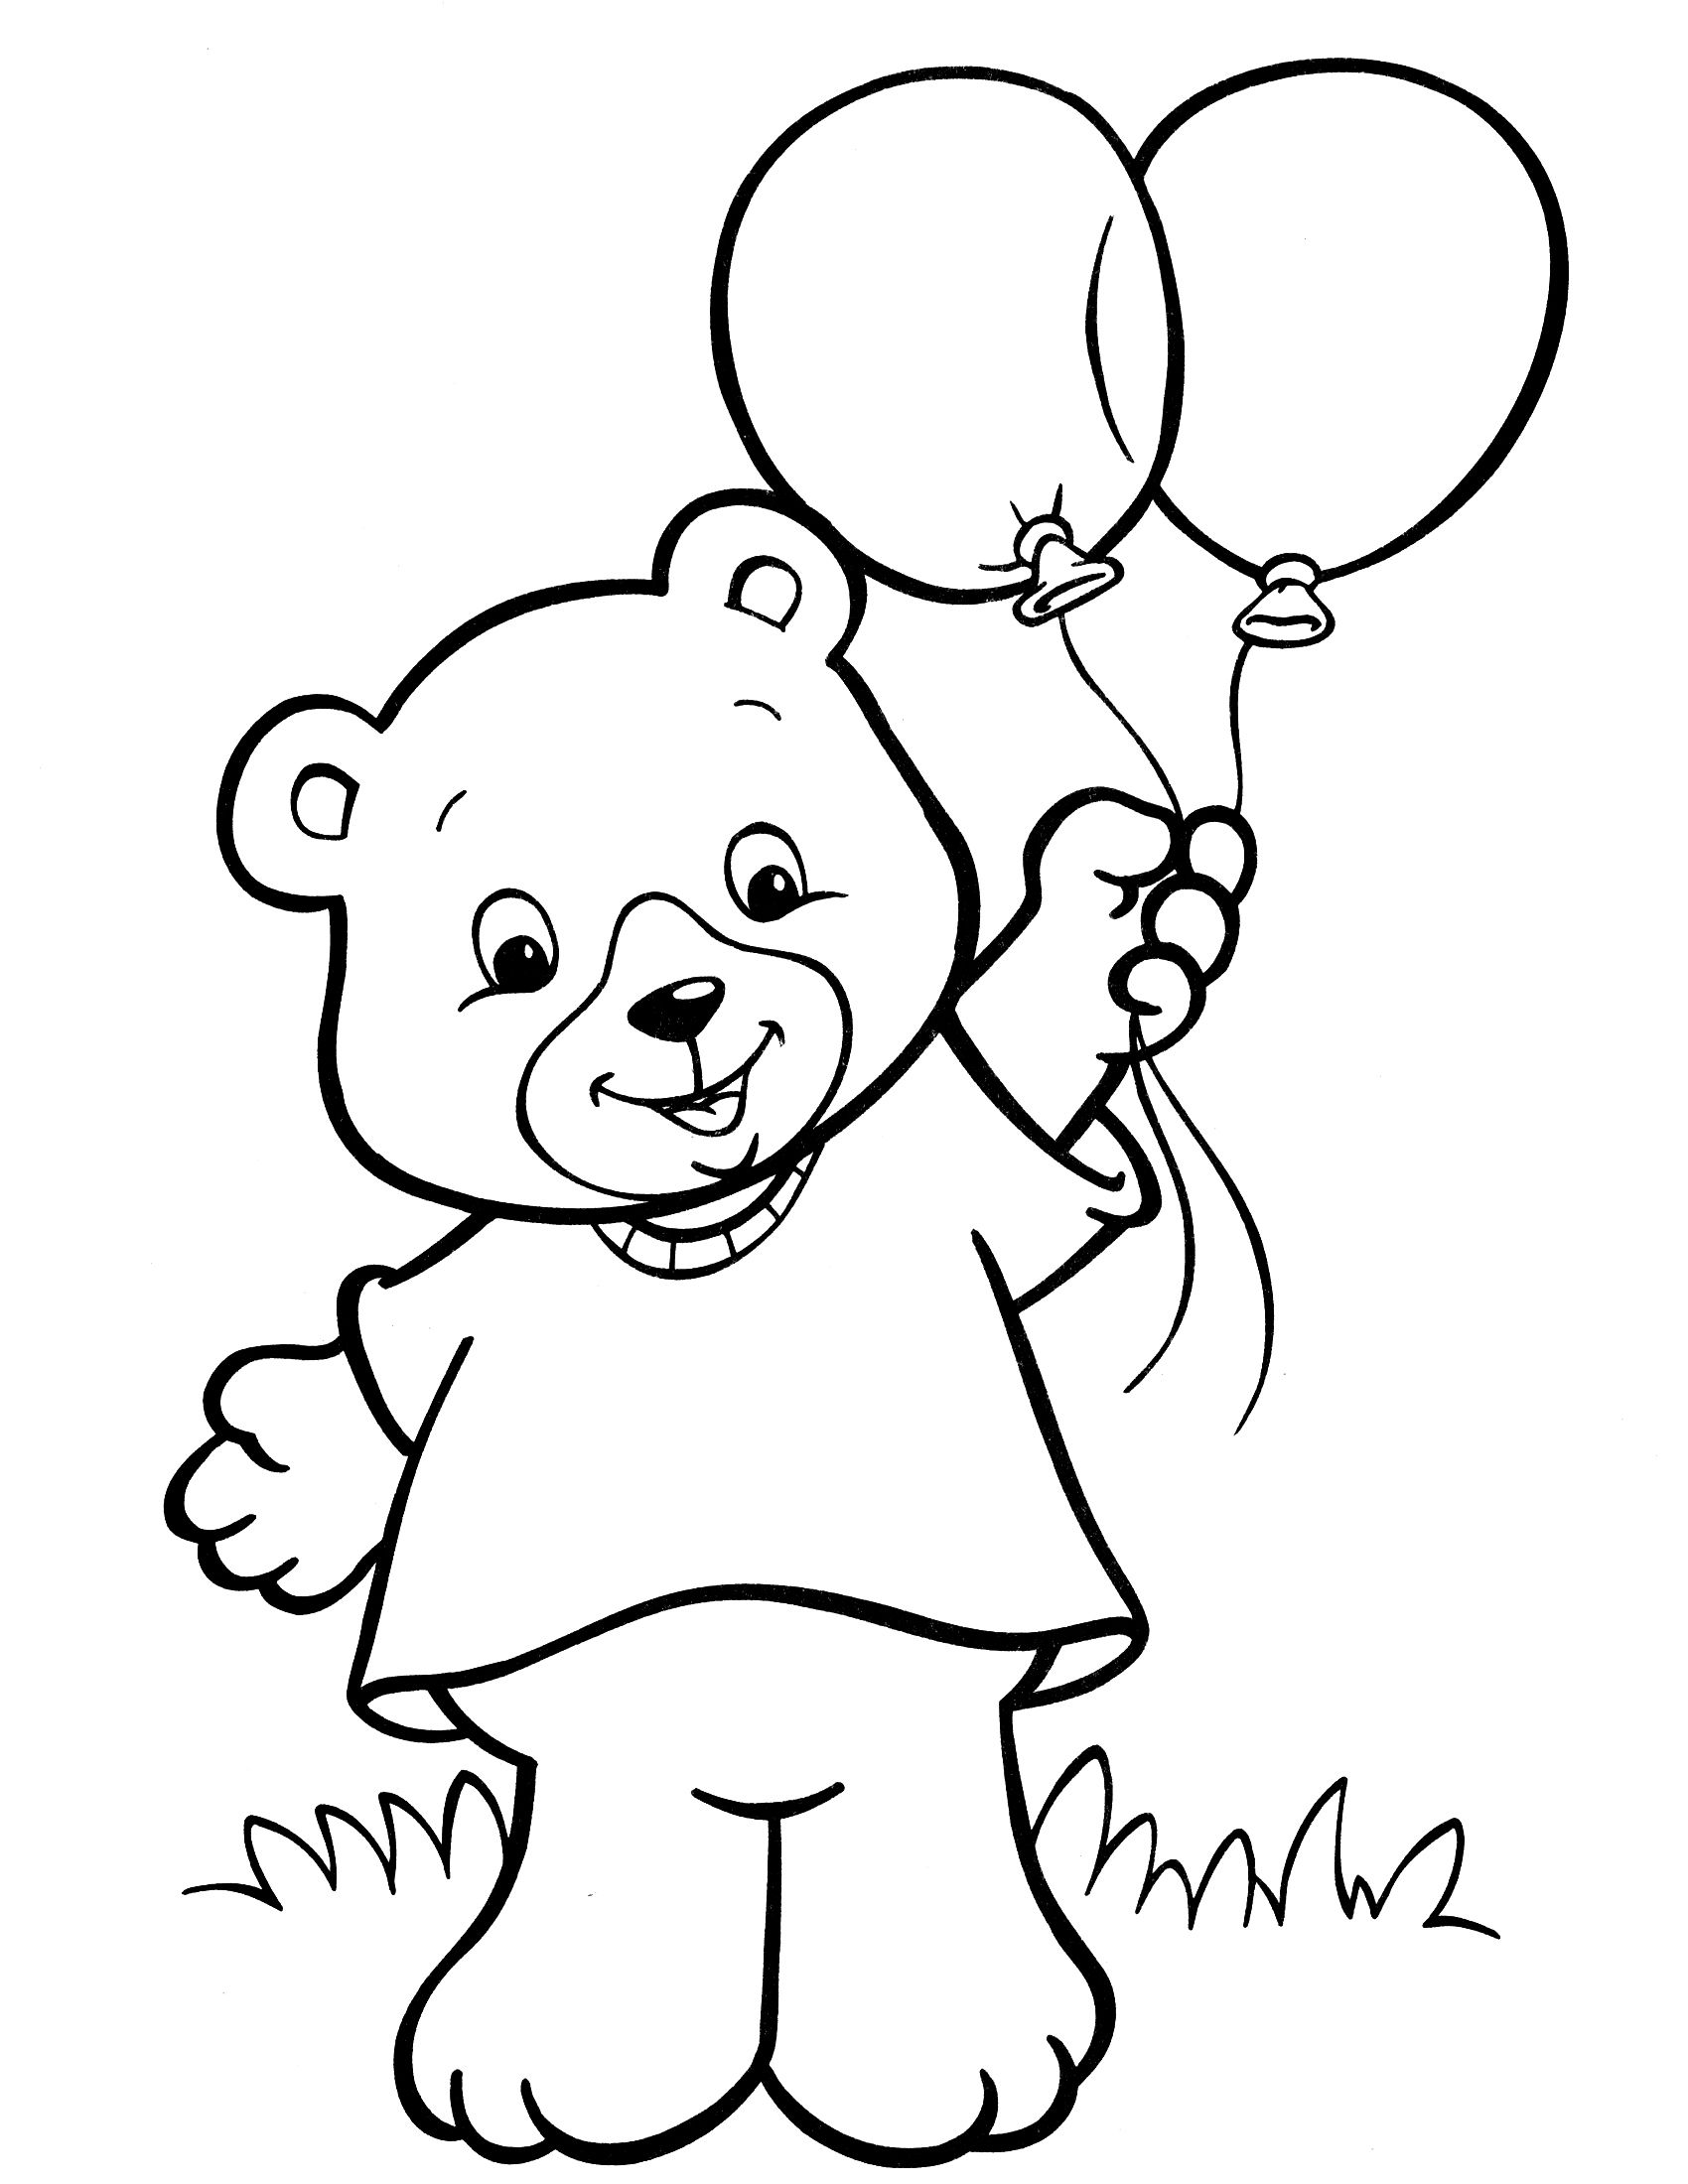 Crayola 34 Coloringcolor Com Crayola Coloring Pages Bear Coloring Pages Summer Coloring Pages